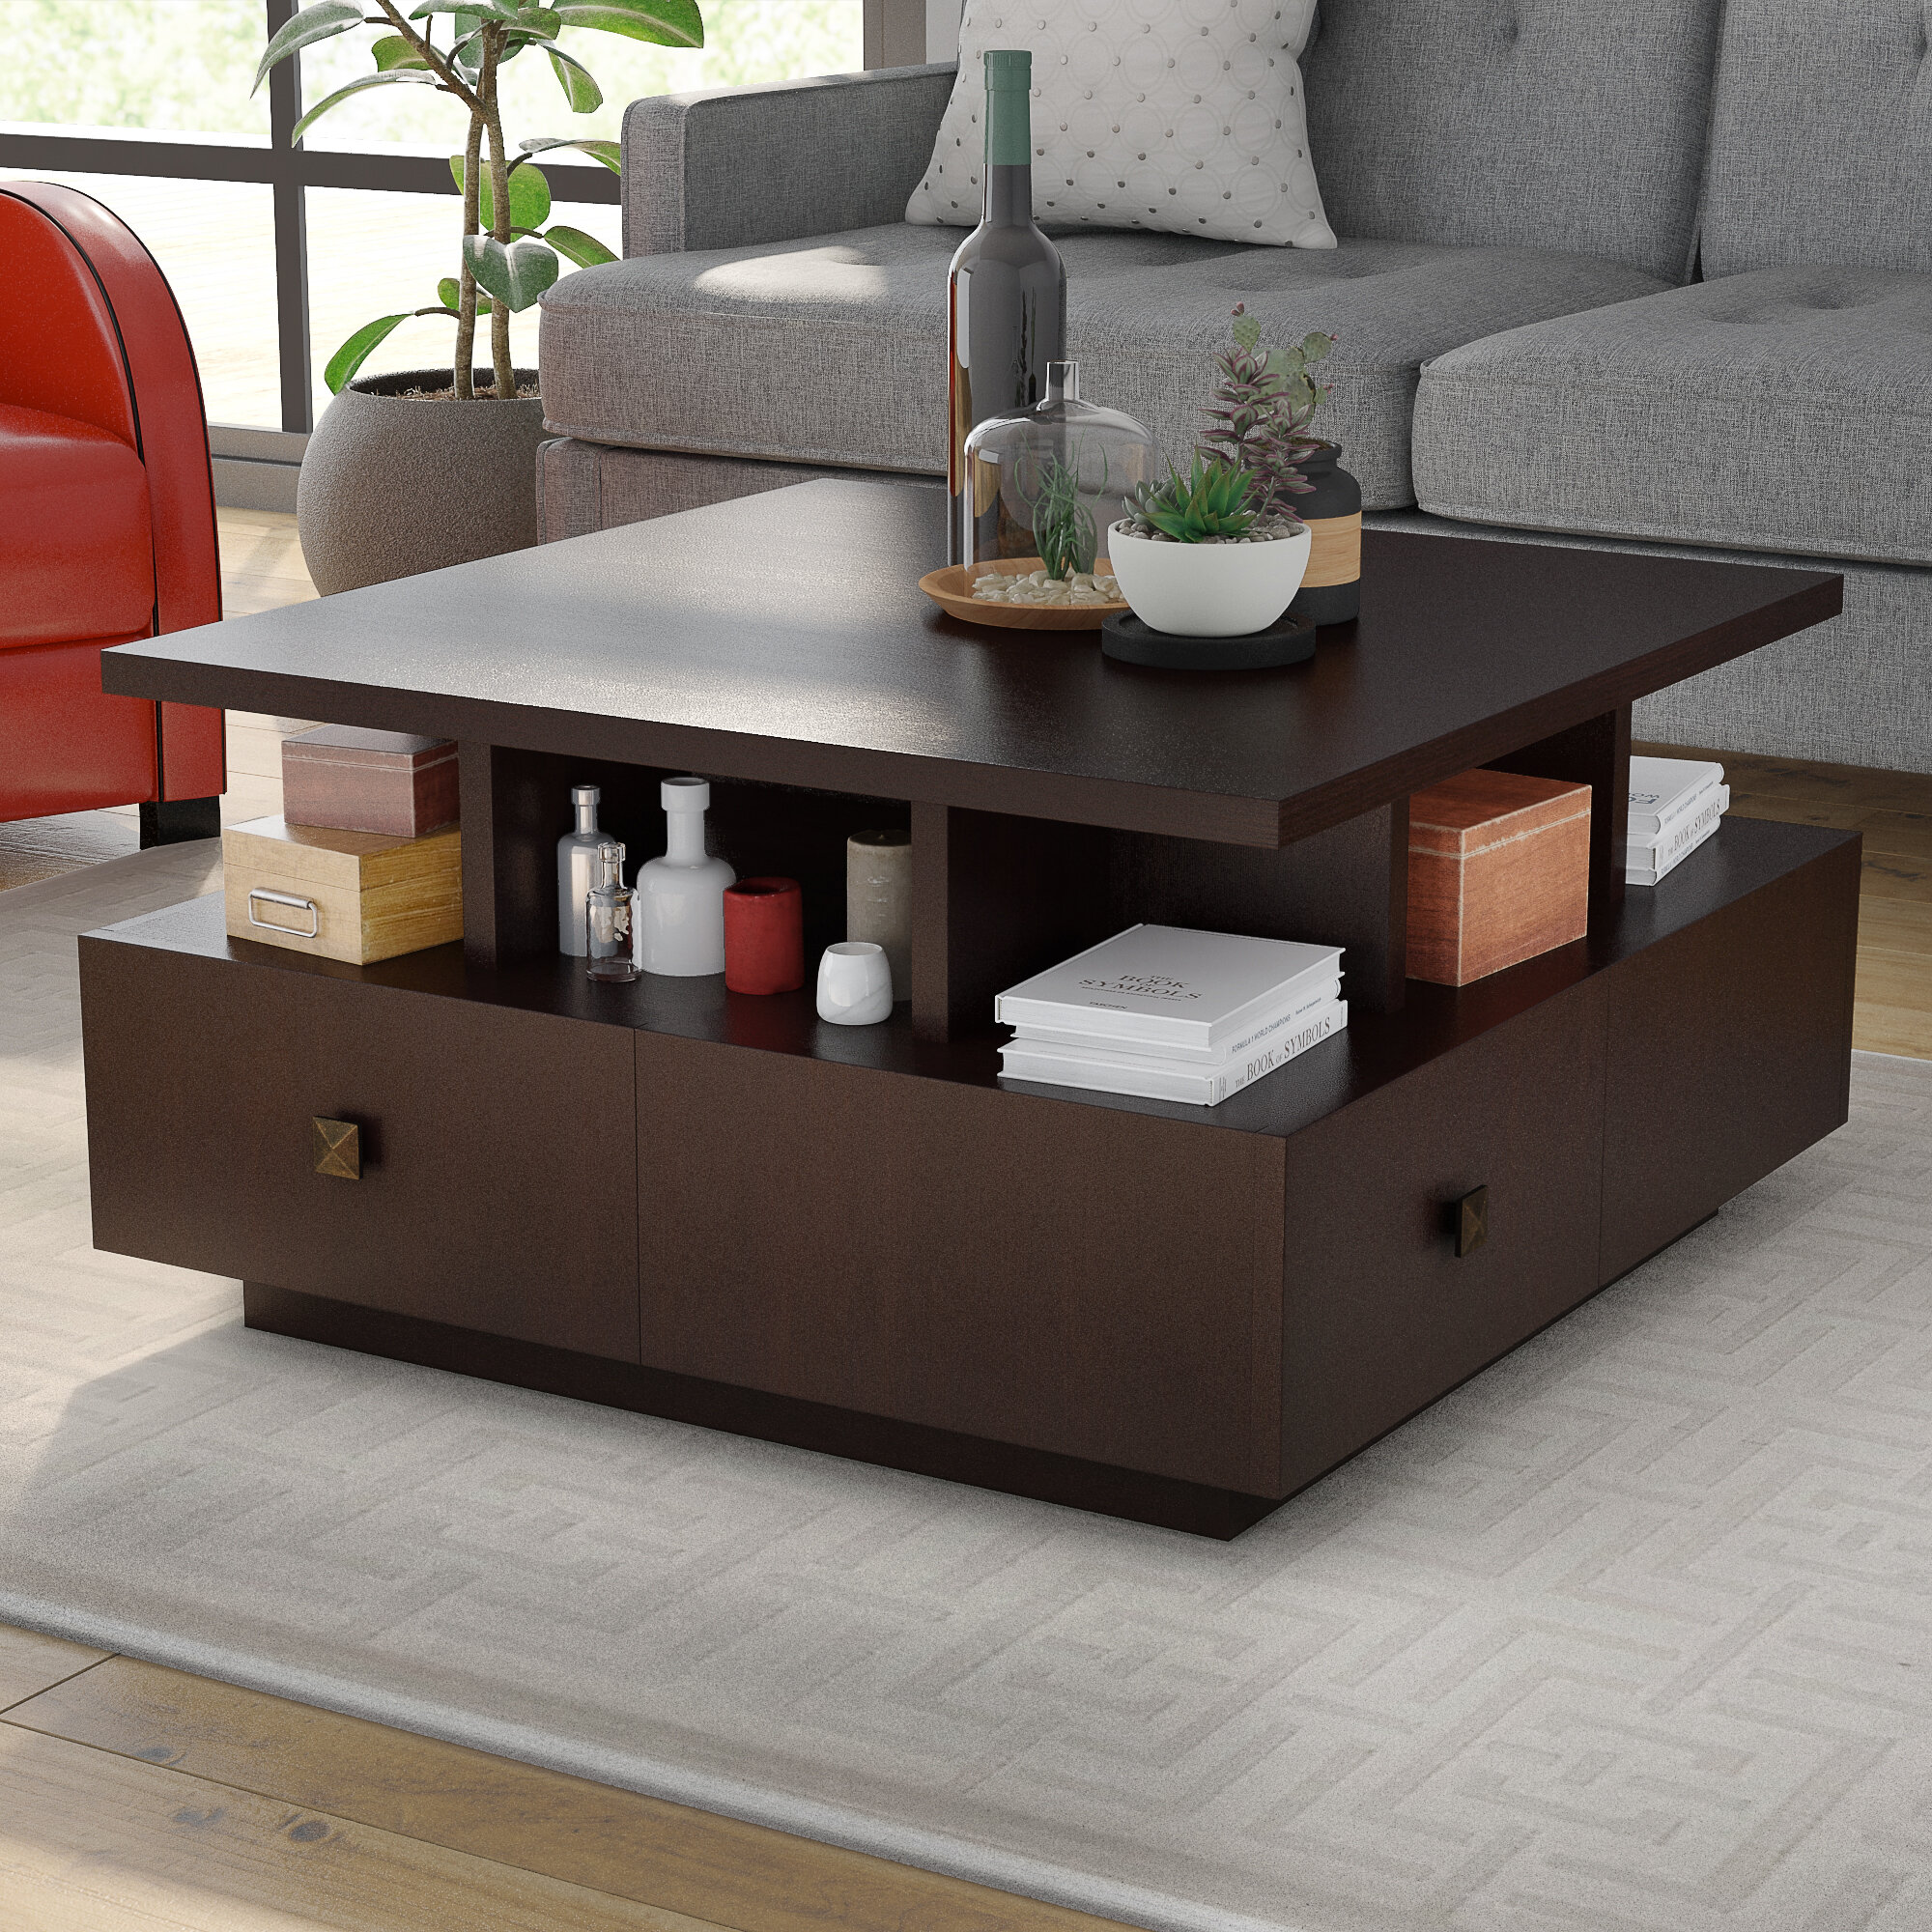 Square Coffee Table New At Image of Cute